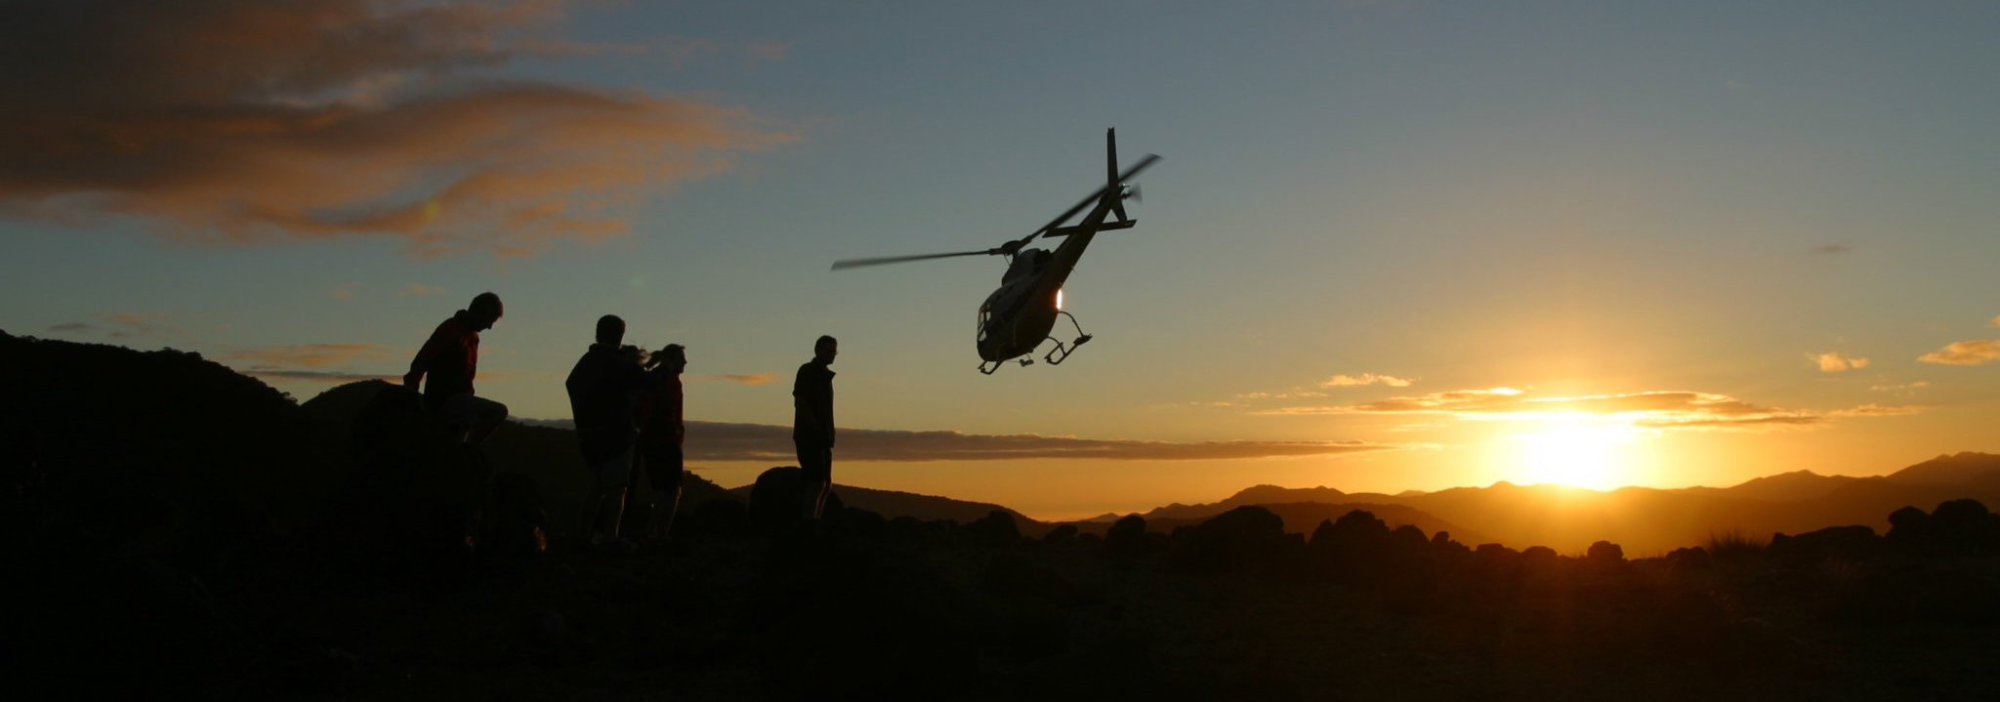 helicopter taking off into sunset